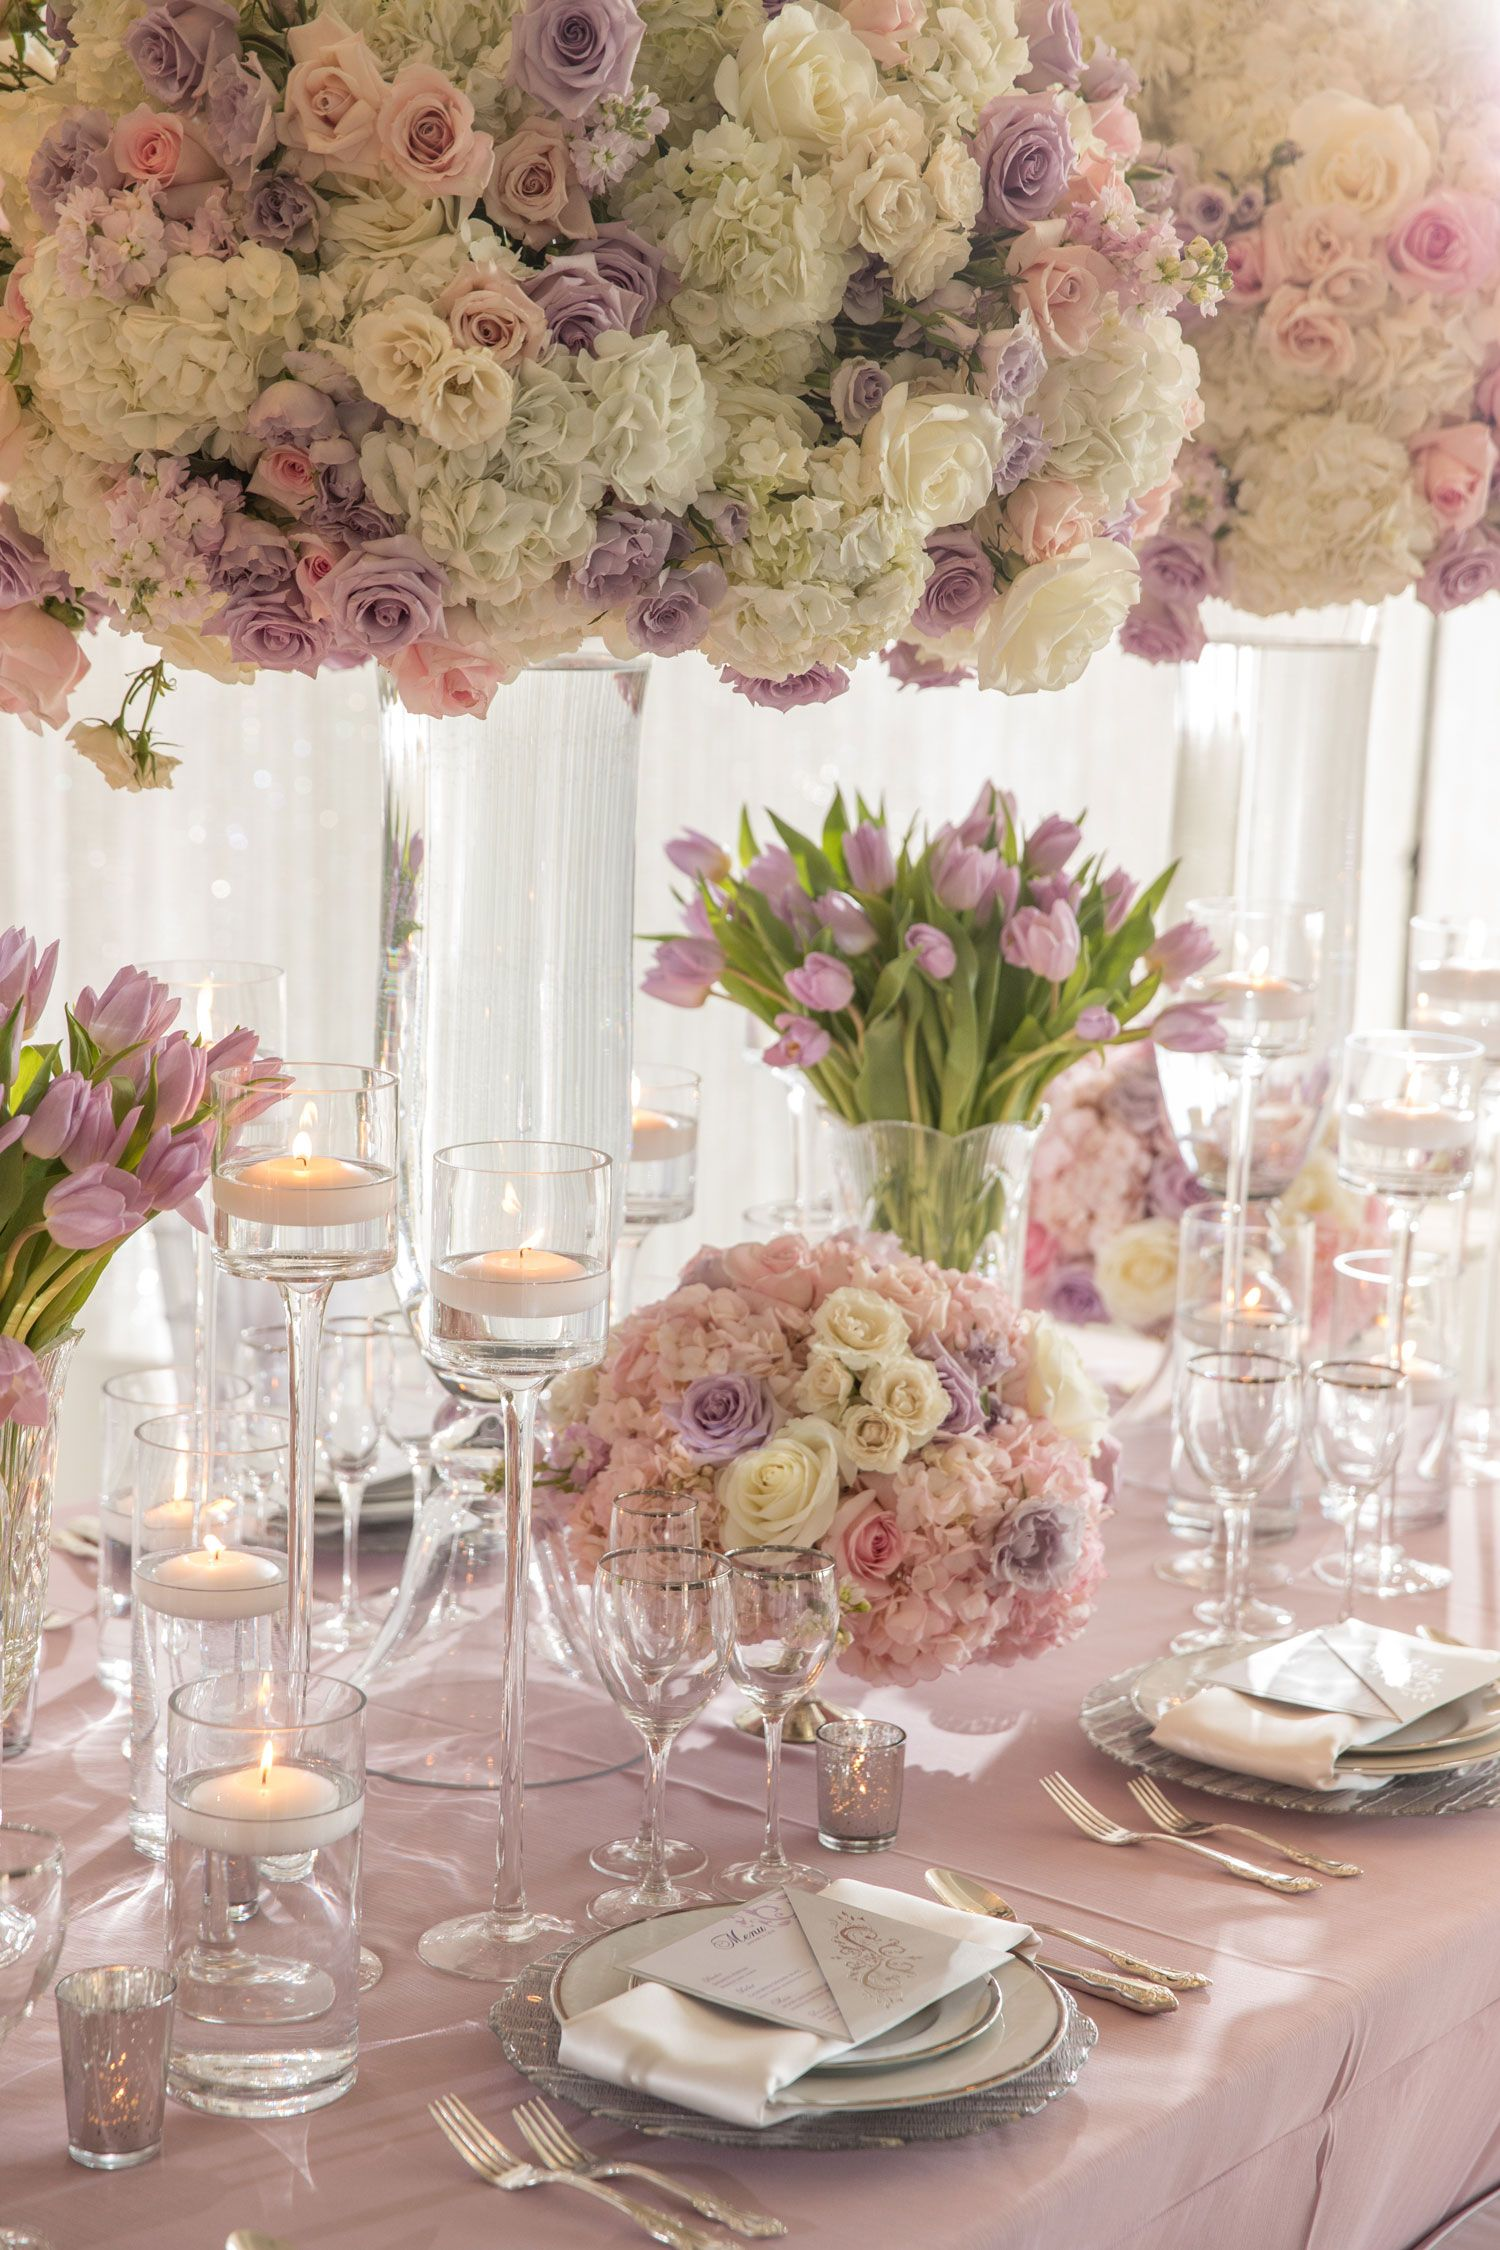 Styled Spring Wedding Shoot With Lavender, Blush & Silver D